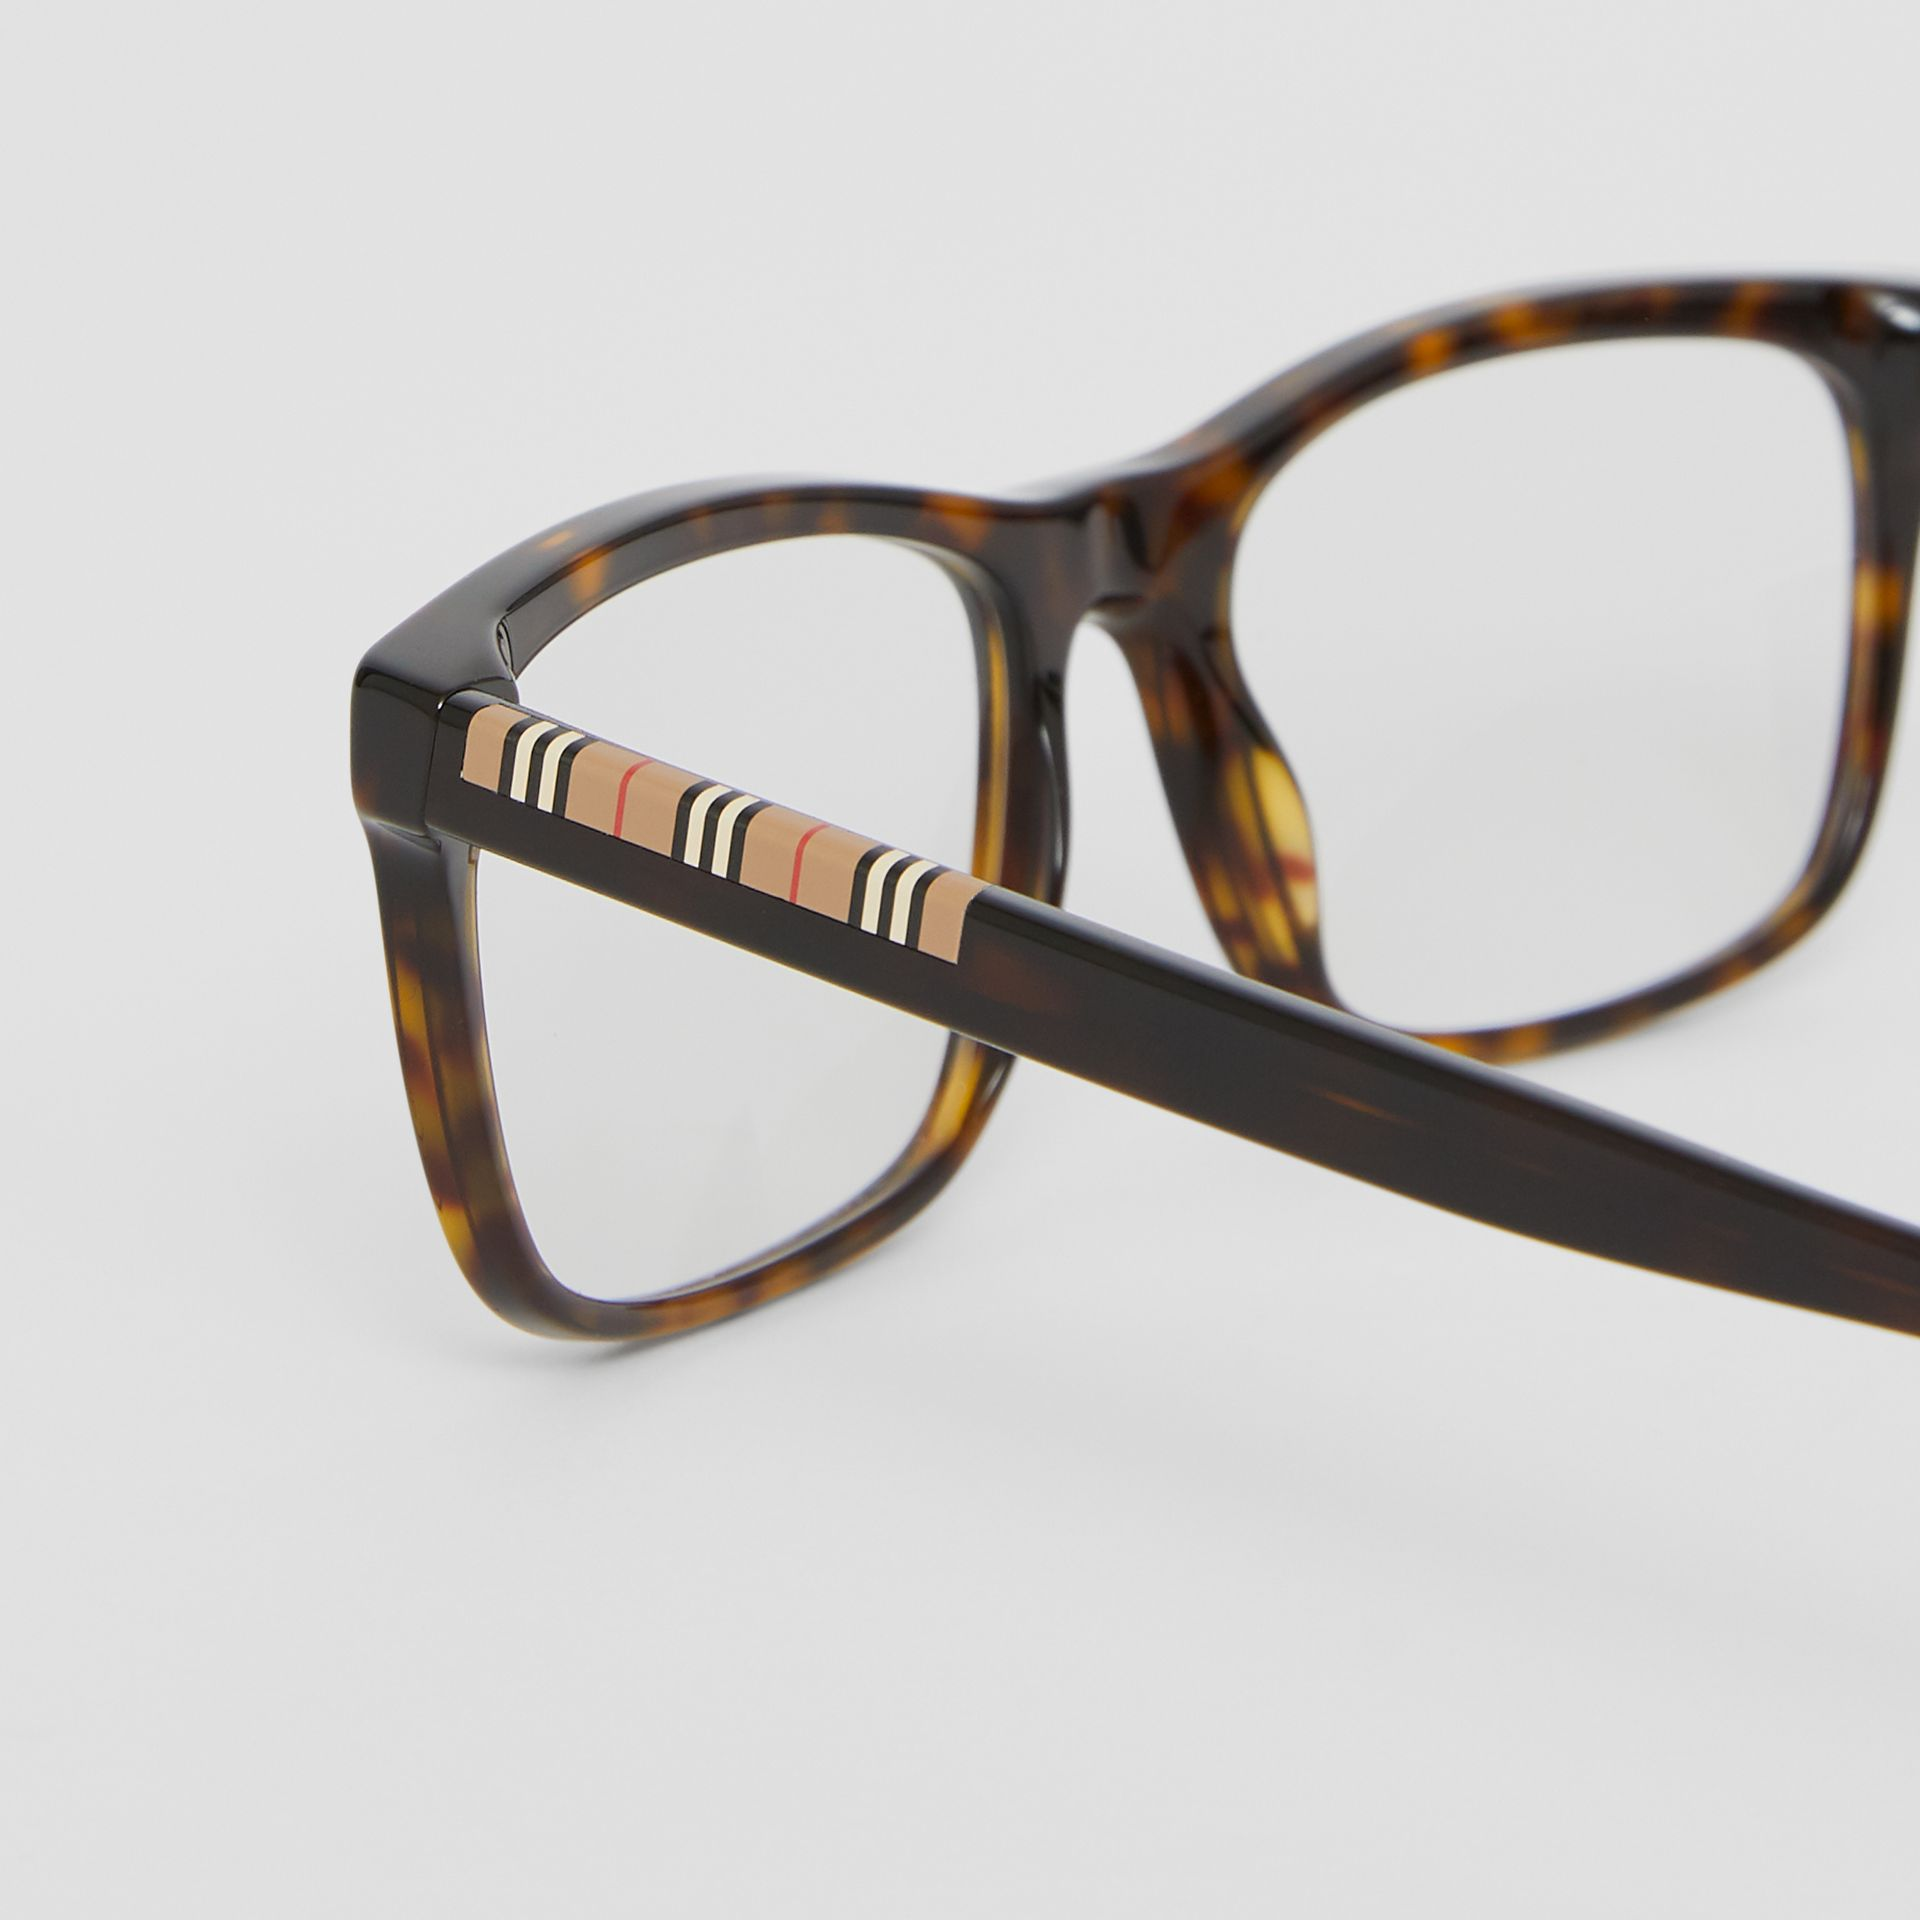 Icon Stripe Detail Rectangular Optical Frames in Tortoiseshell - Men | Burberry - gallery image 1